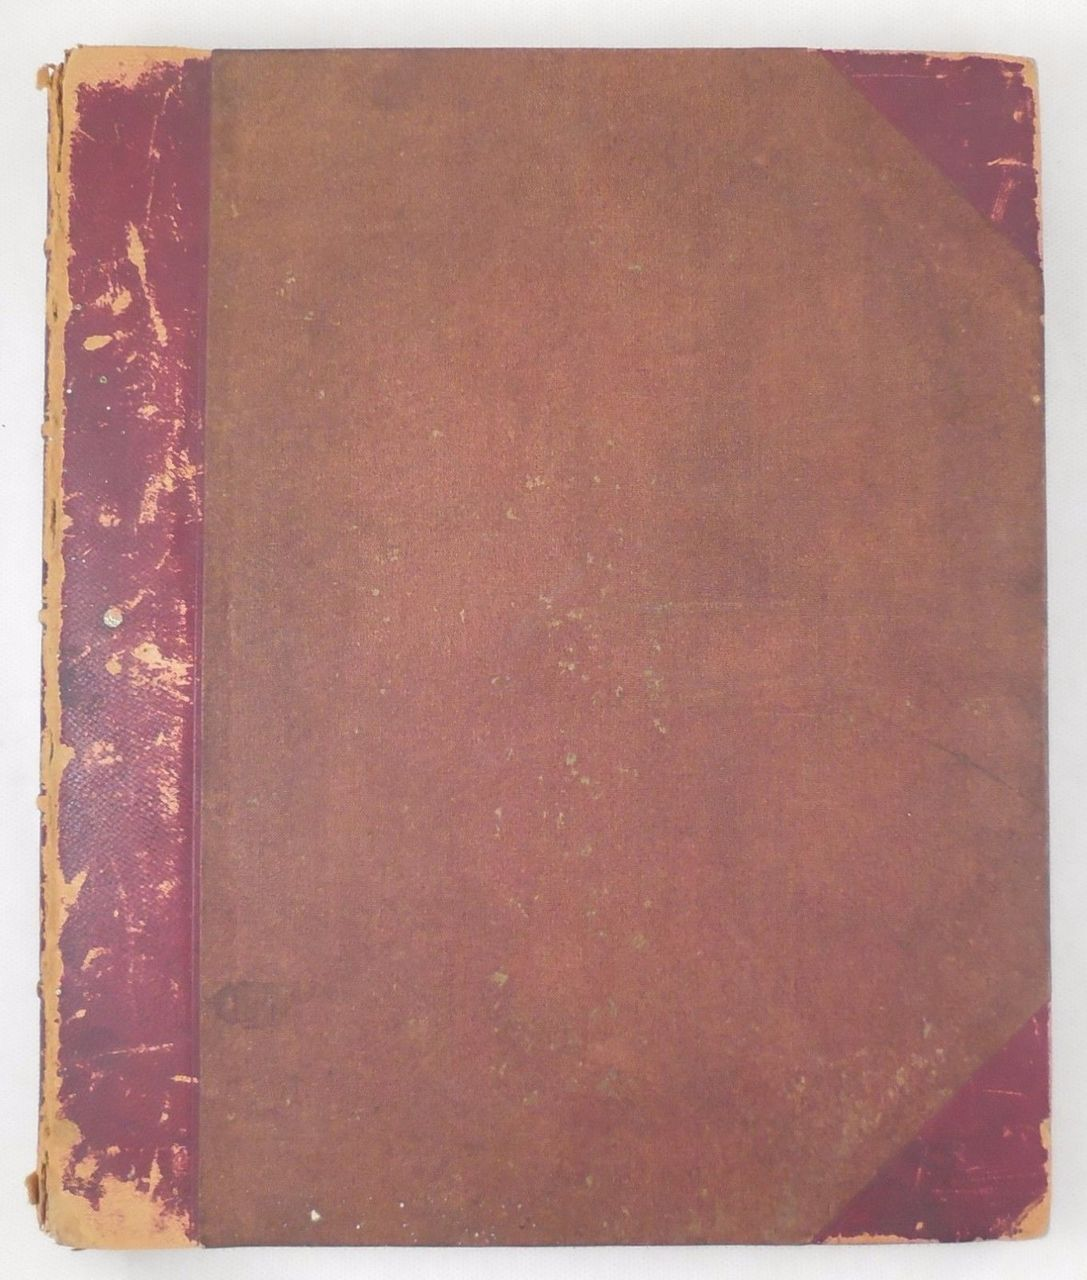 A REPORT ON THE ...CUNDURANGO, by W.S.W. Ruschenberger - 1873 Plates Medical